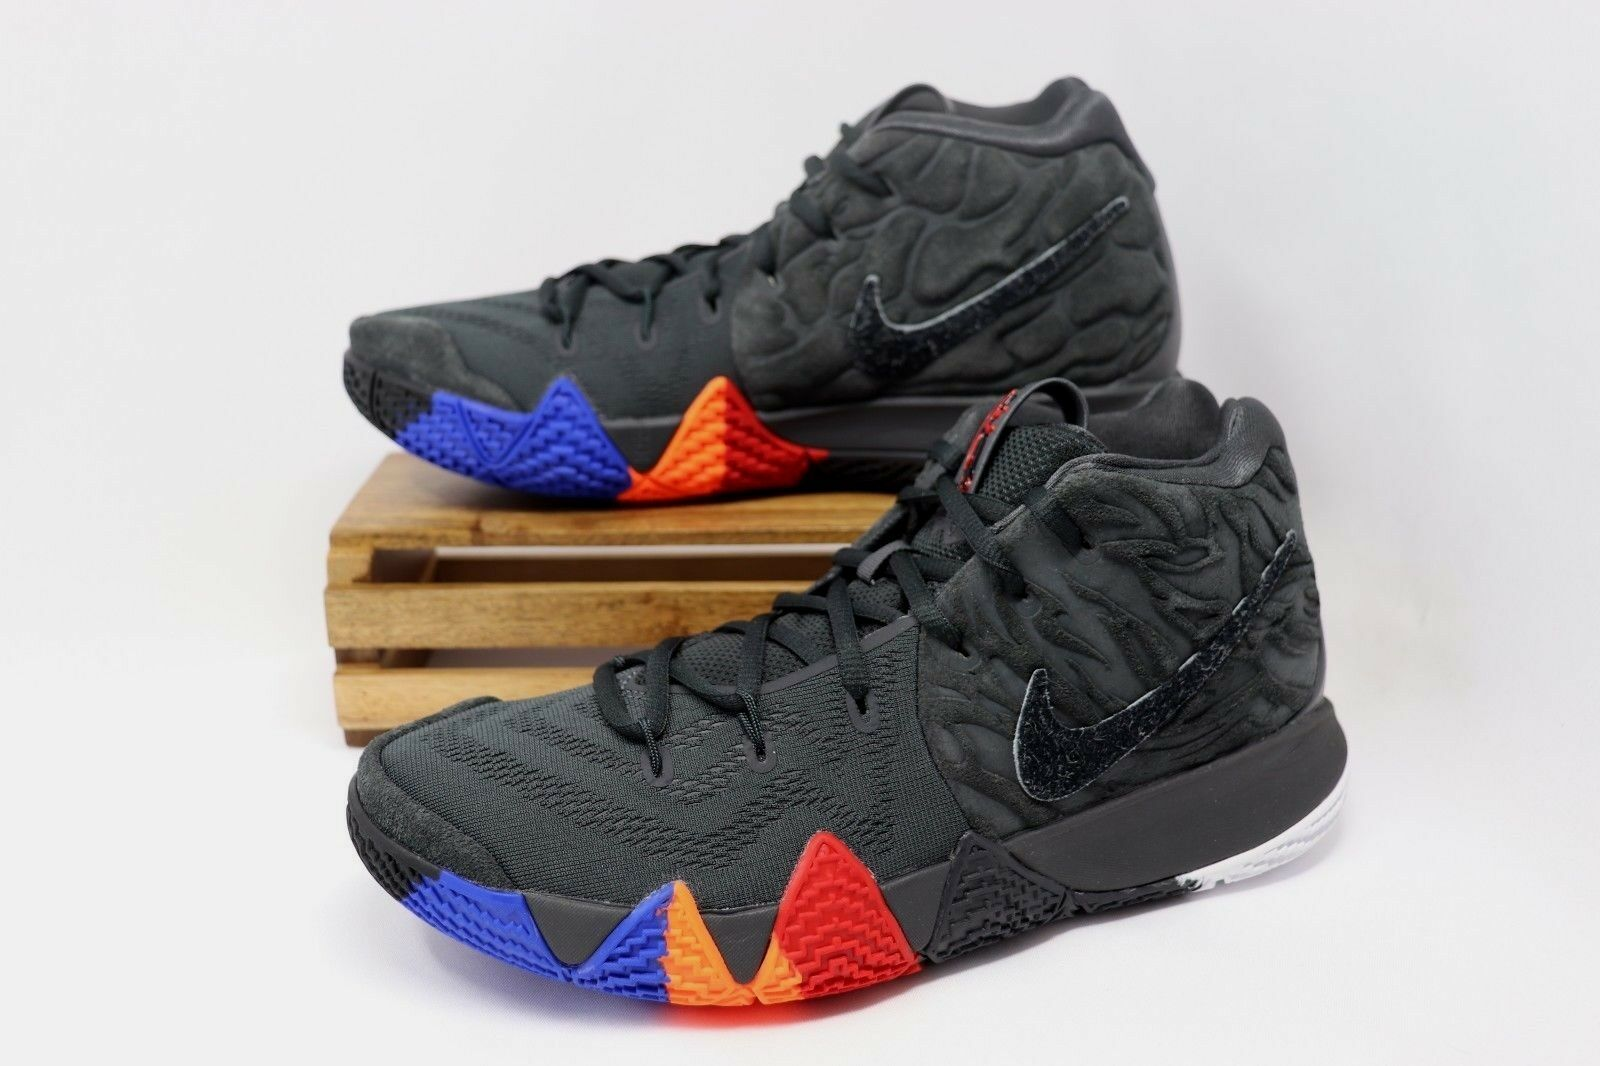 sneakers for cheap 1f829 d78c0 Mens Sz 12 Nike Kyrie 4 Irving Year of The Monkey Anthracite 943806-011